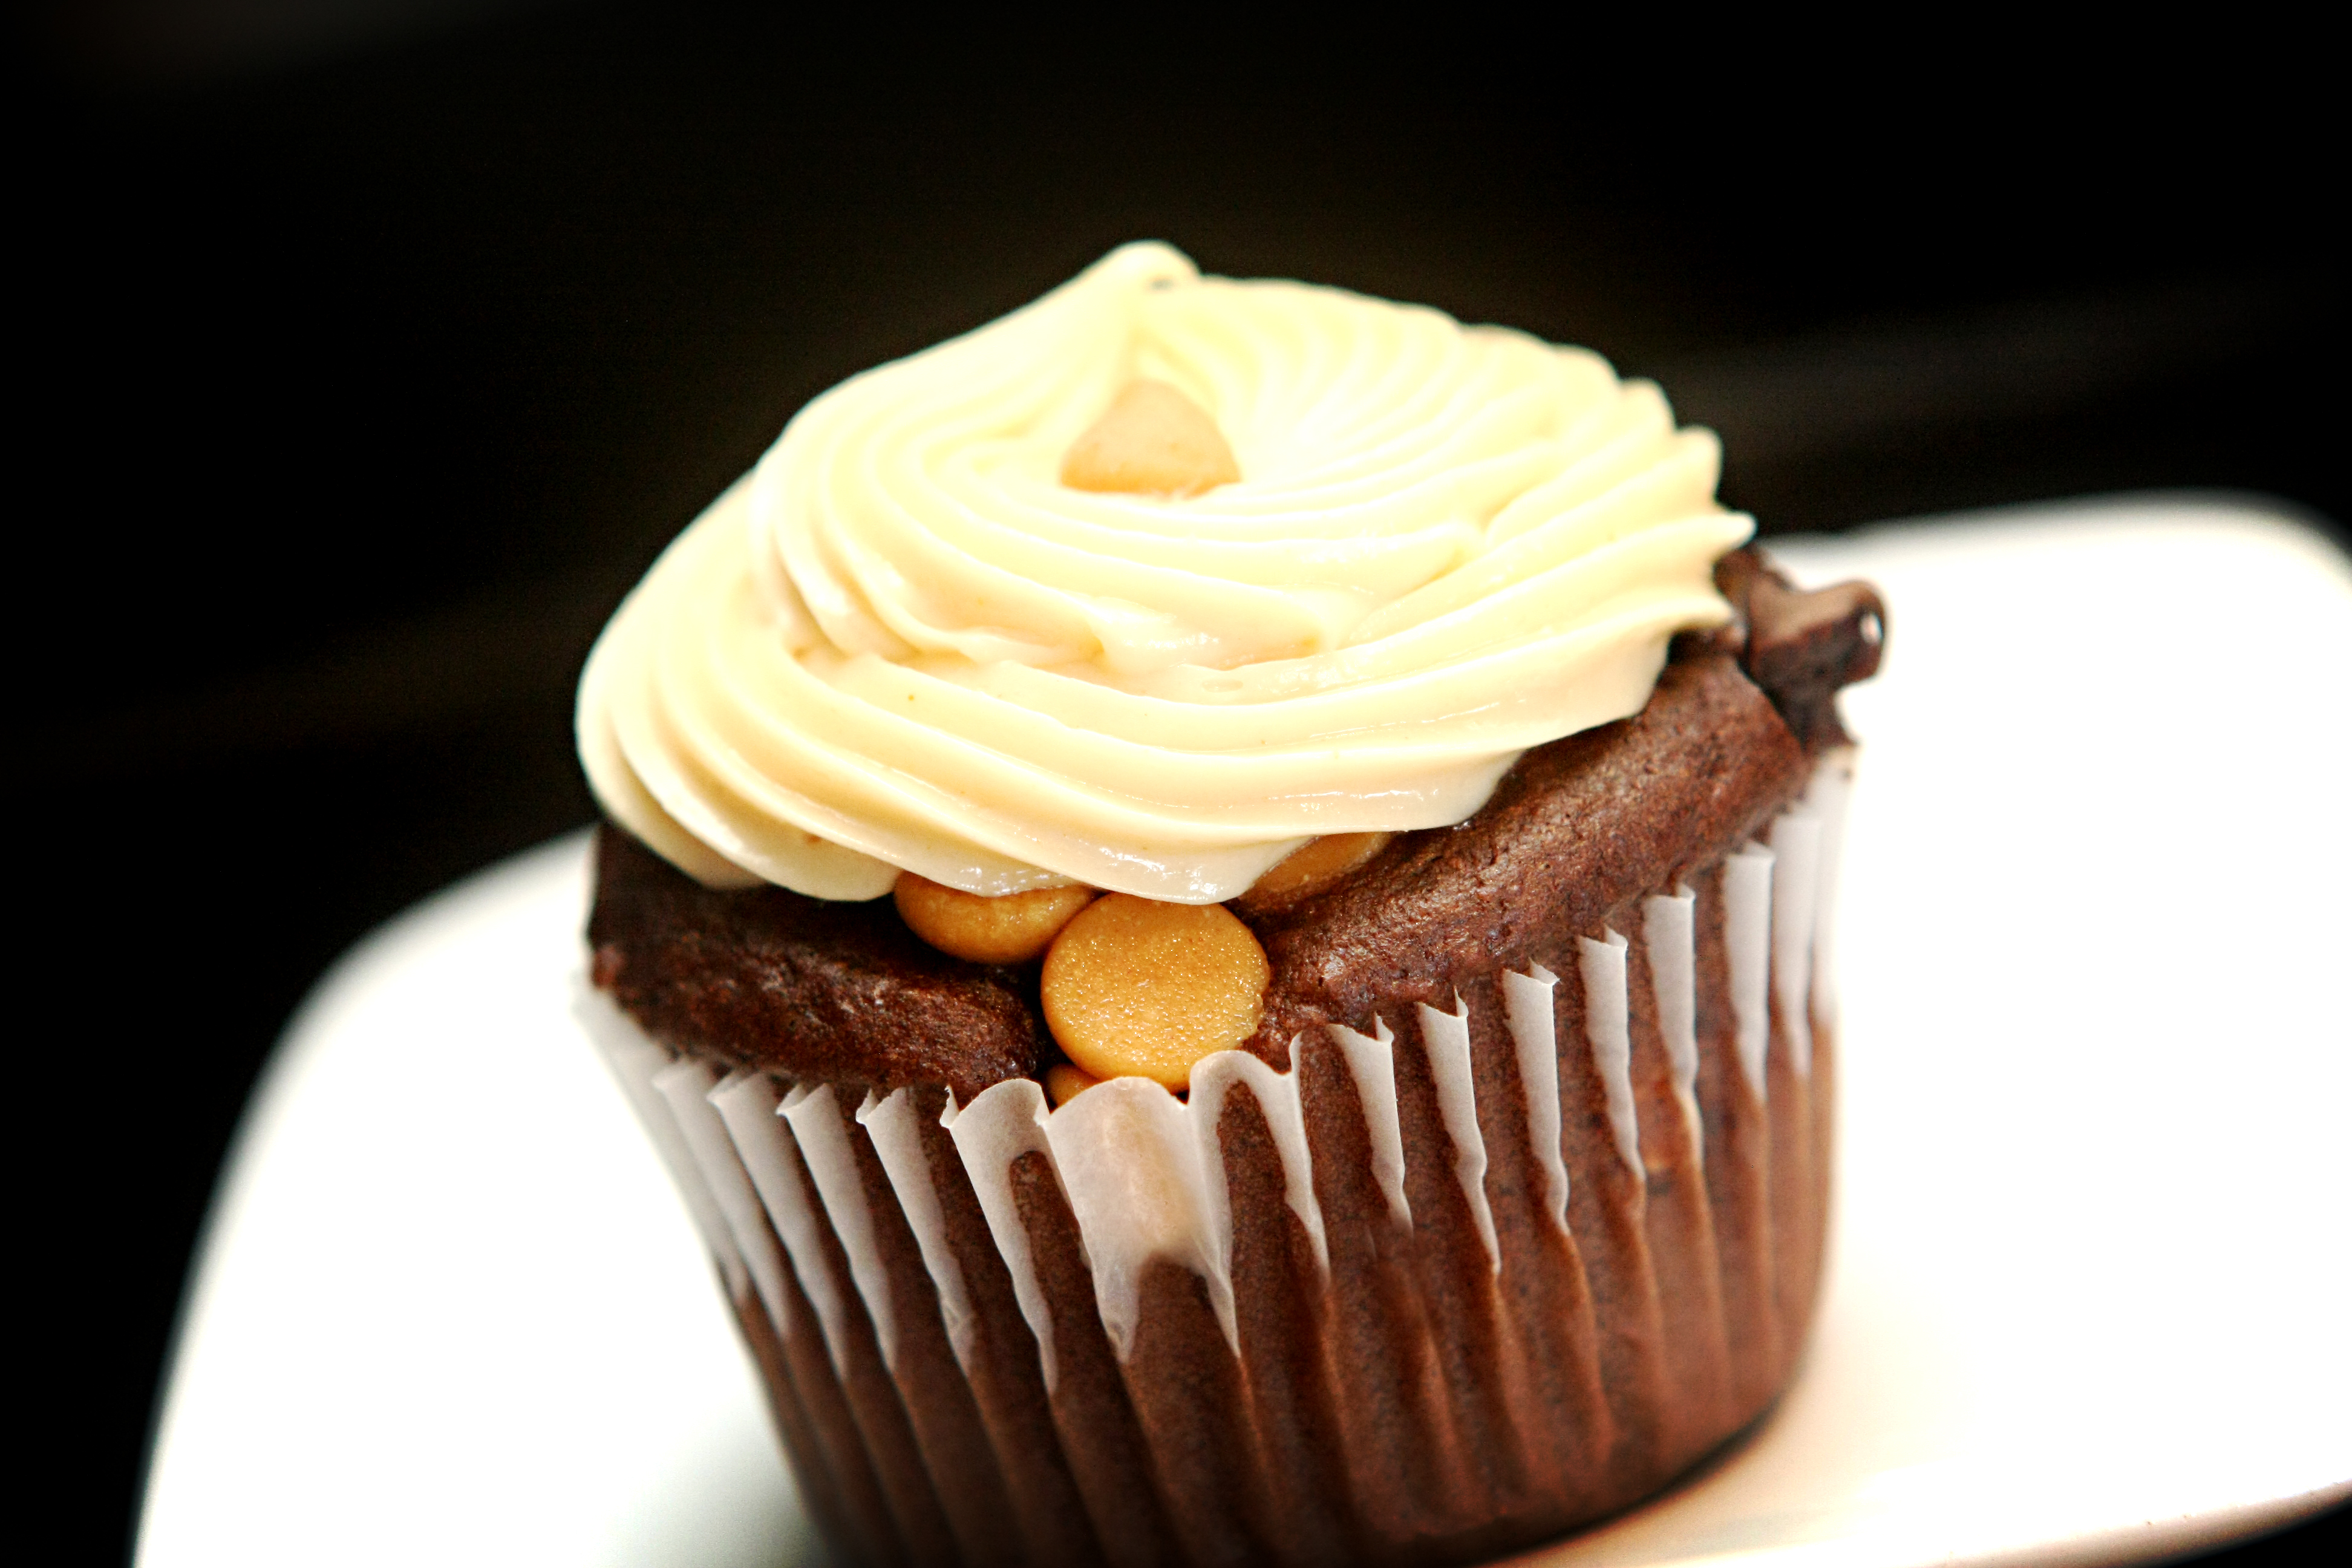 Lightning Cupcakes Chocolate Peanut Butter 2054